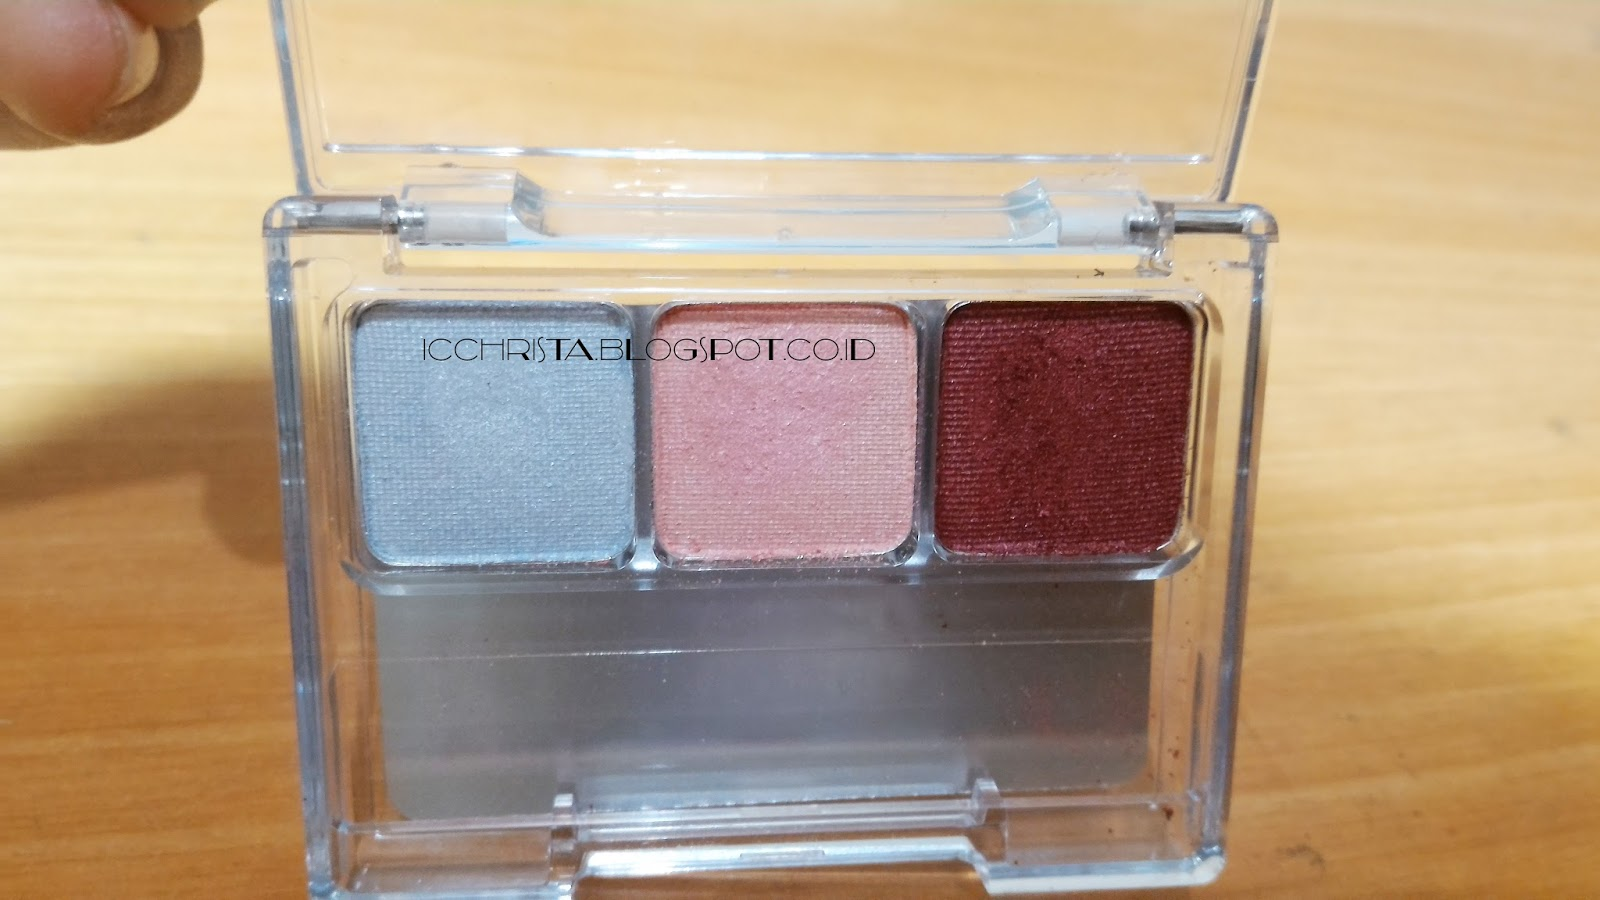 Wardah Eye Shadow Palette L Series Review - Christa's Blog